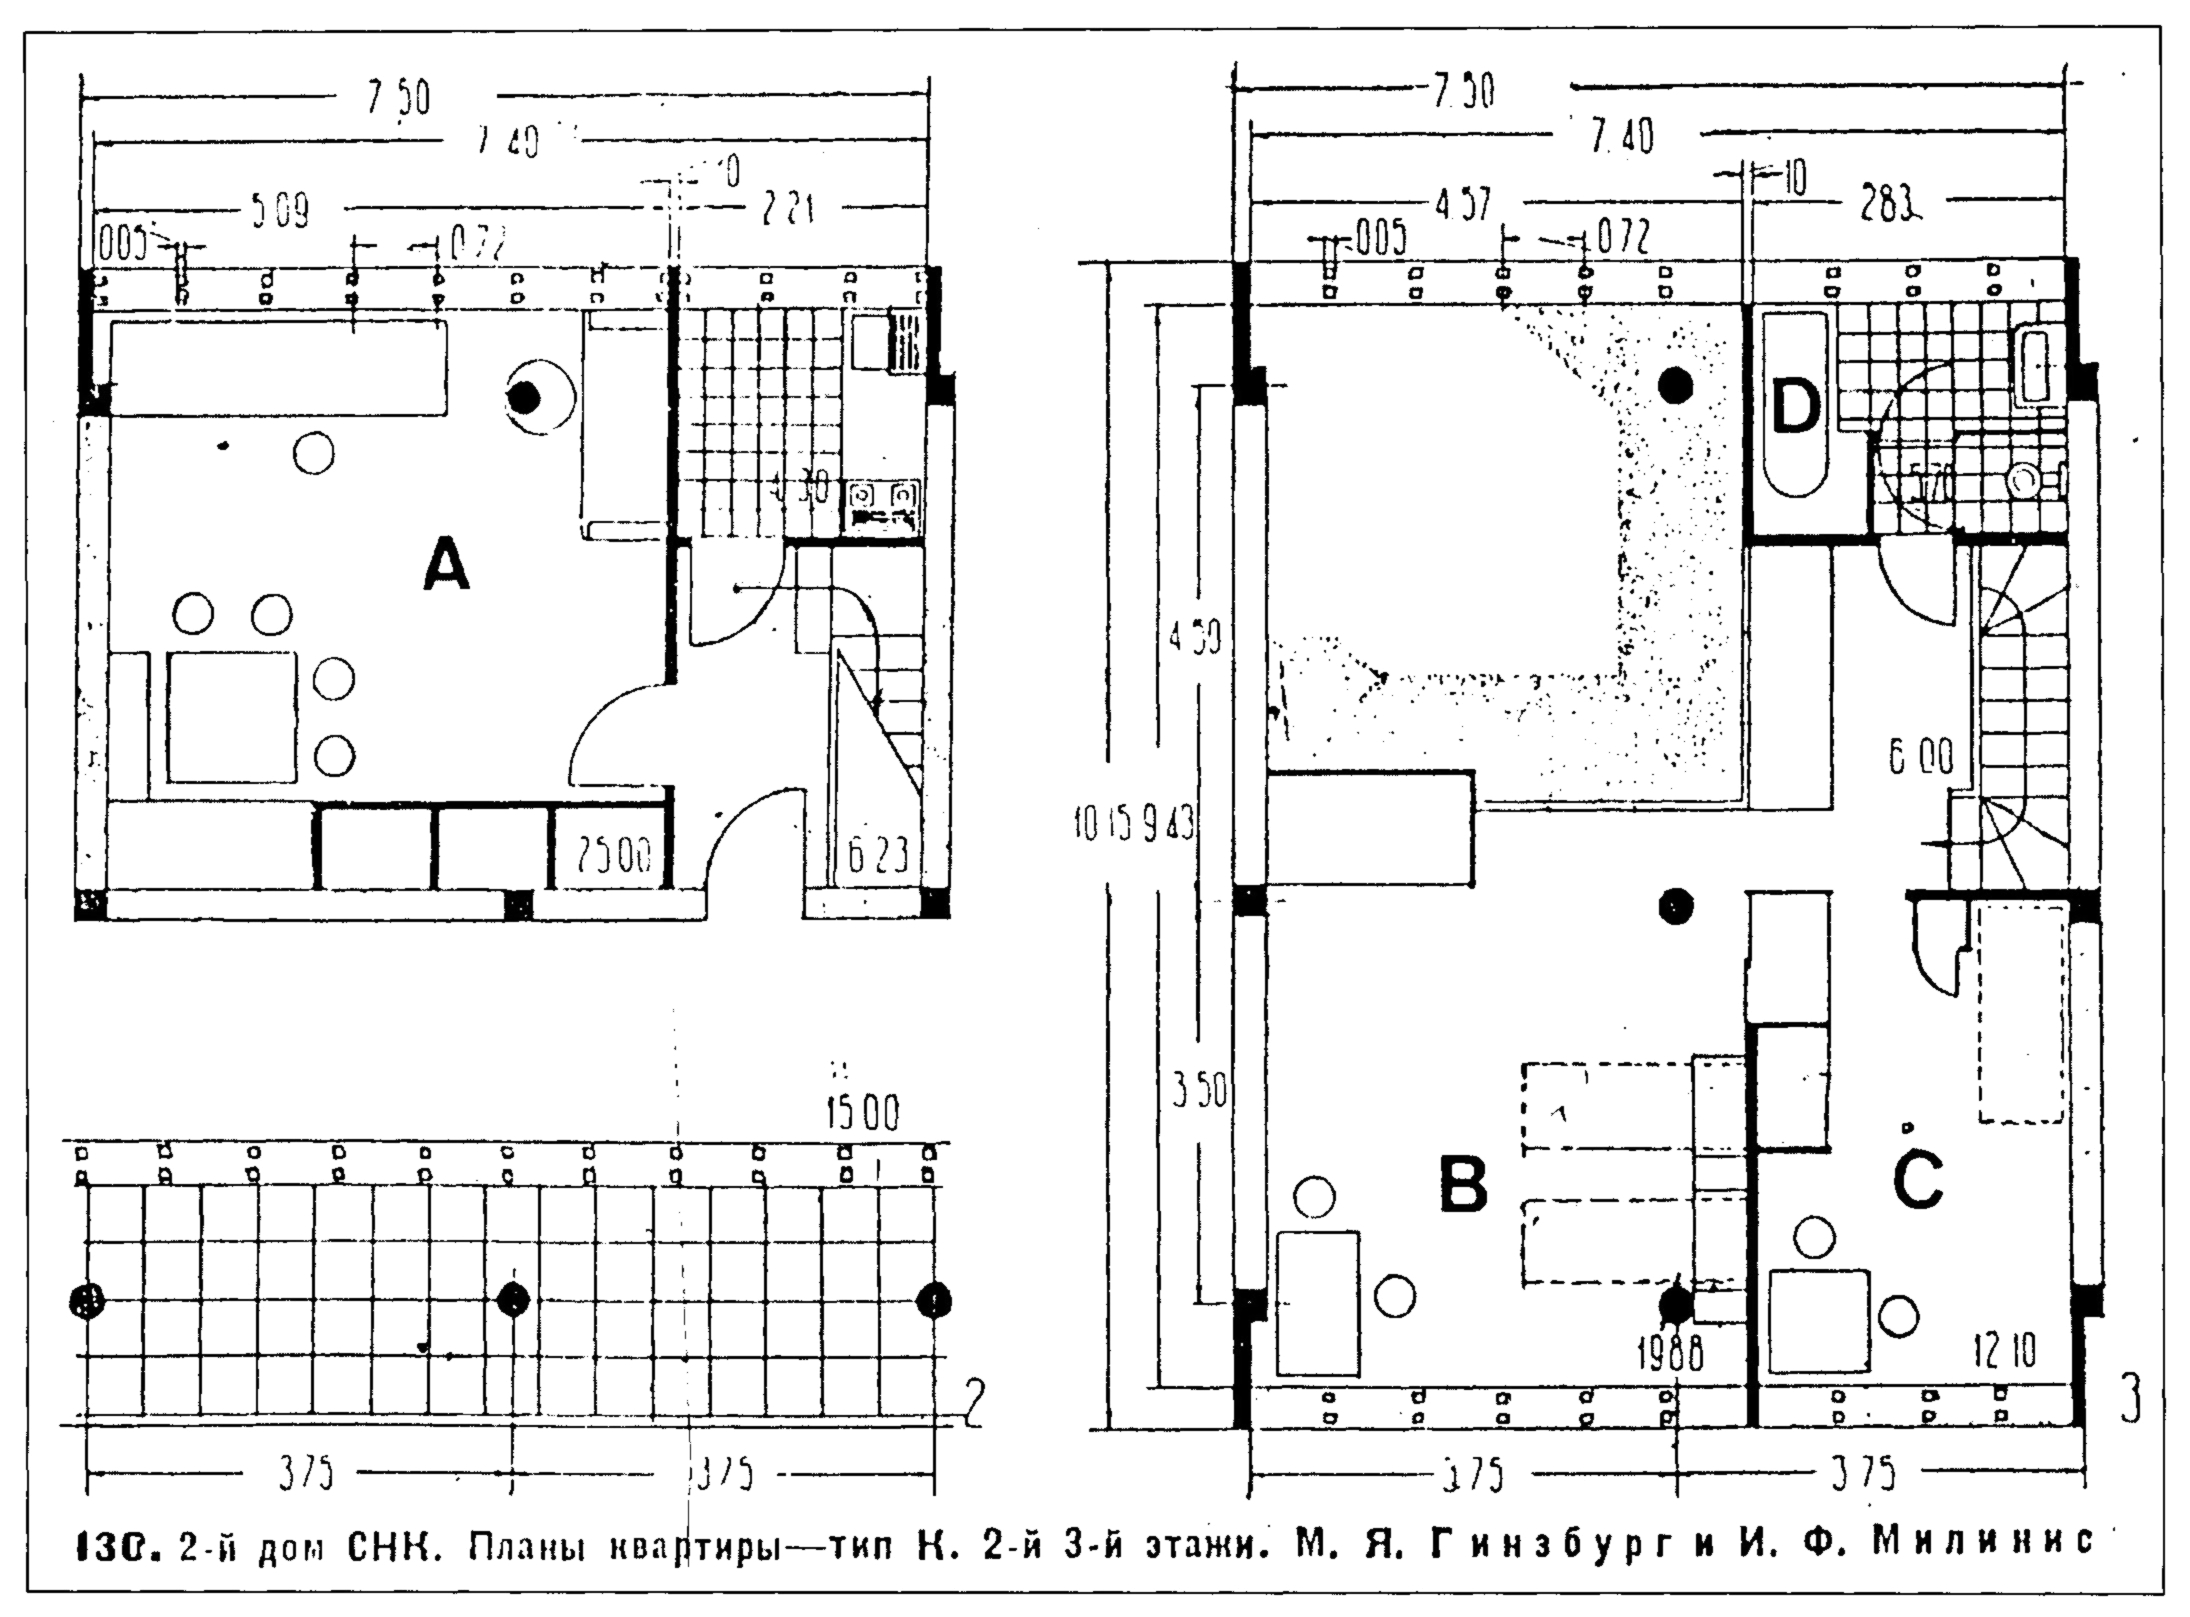 K-unit plans - (A) common room, (B) conjugal bedroom, (C) child's room, (D) bathroom, from Moisei Ginzburg, Zhilishche (Moscow, 1934), pg 105